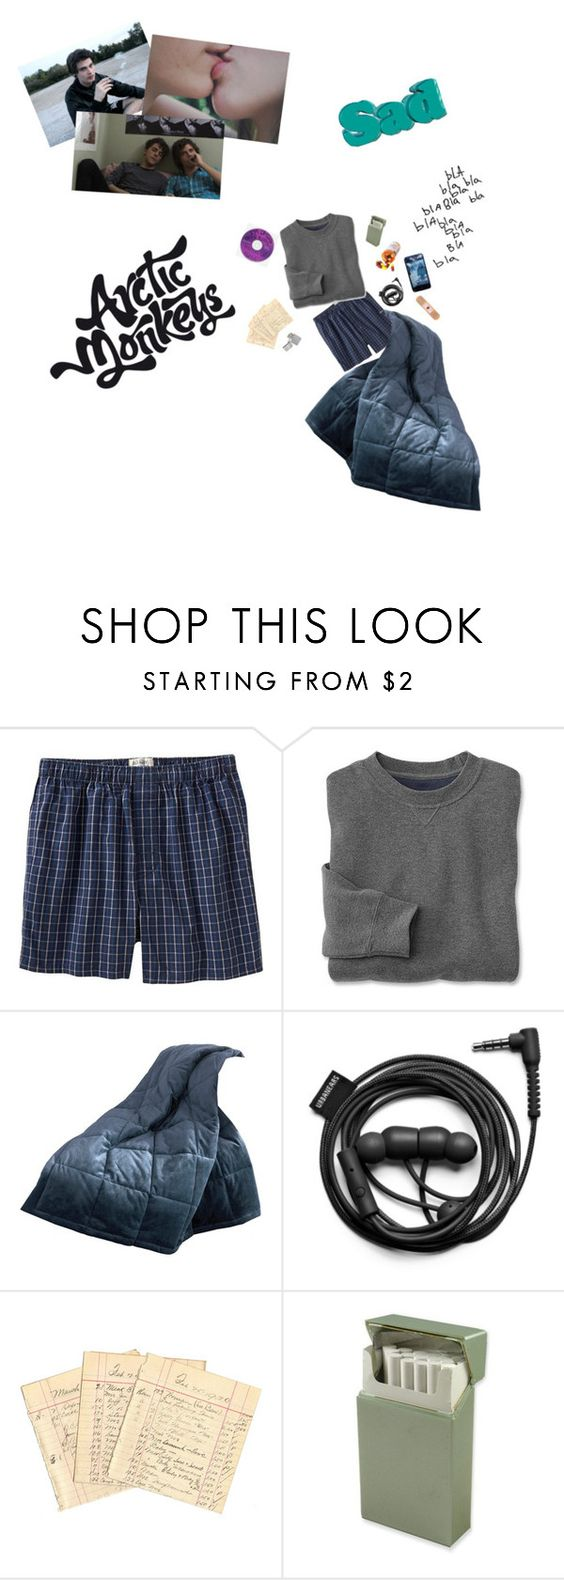 """11pm depression"" by lilwolfy0 ❤ liked on Polyvore featuring Old Navy and Forever 21"